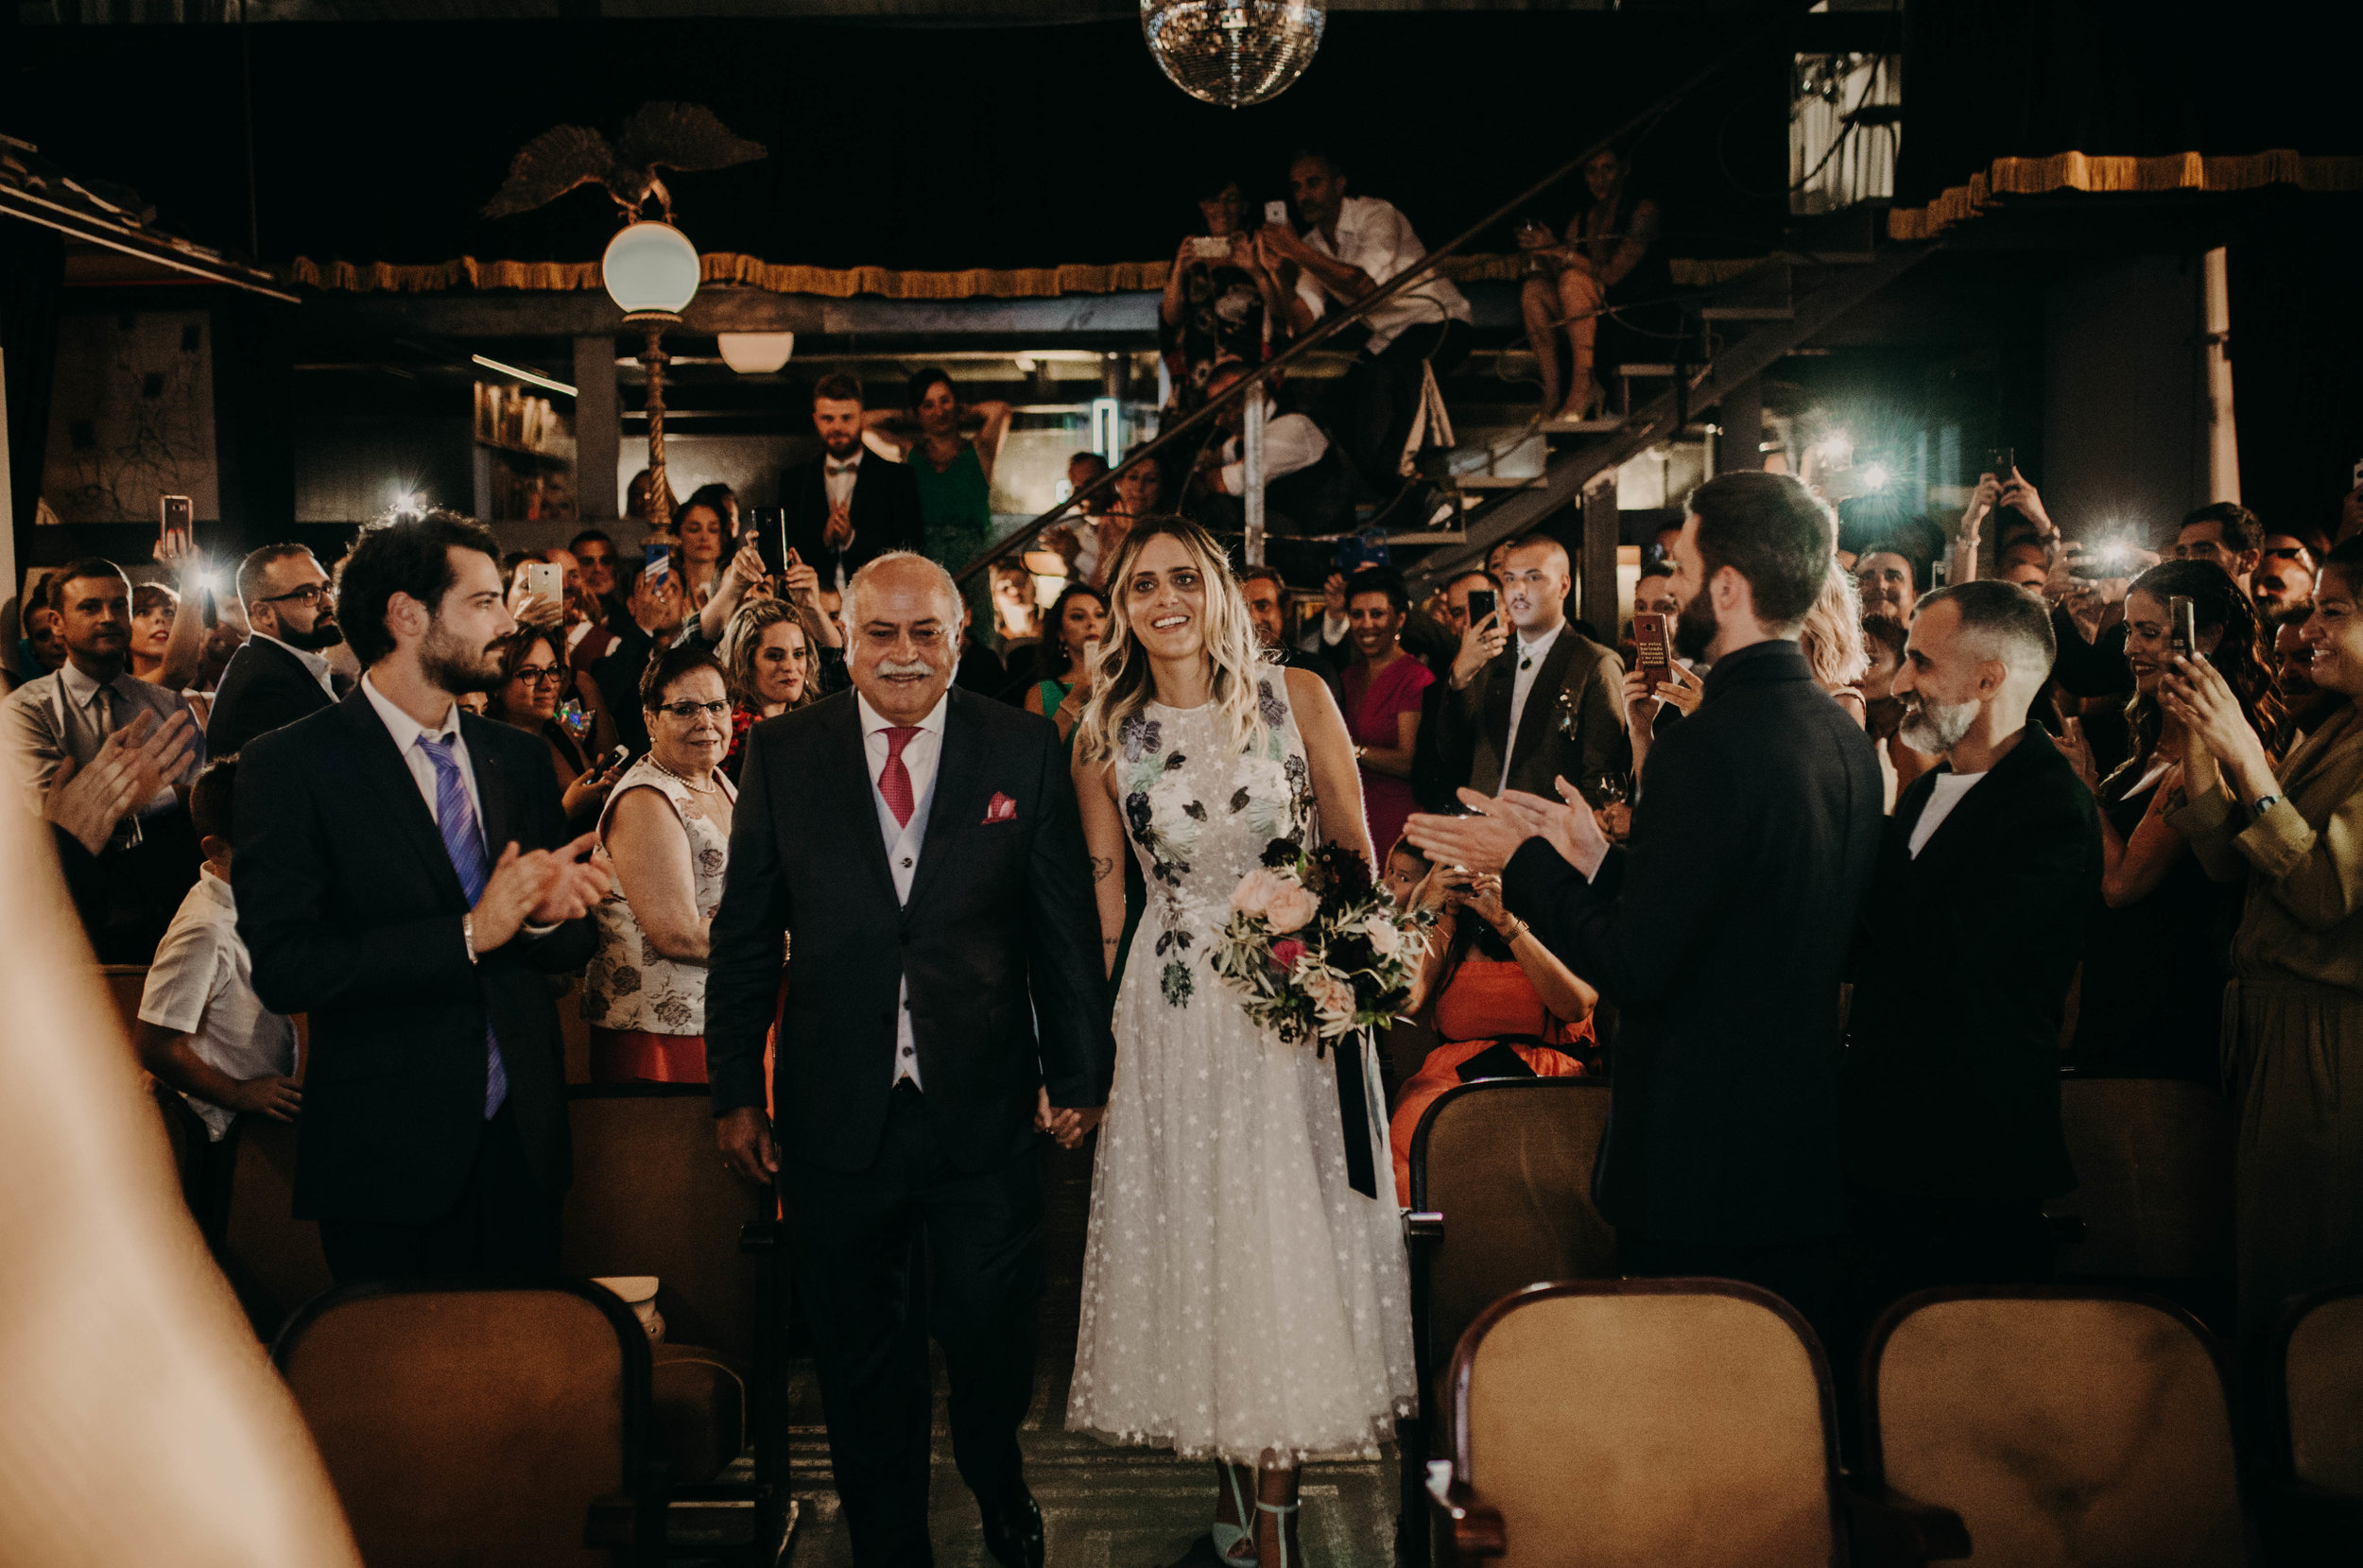 thenortherngirlphotography_bodasindustriales_bodasdiferentes_weddingphotographer_spanishphotographer_spanisgweddingphotographer_happyendings_mercantic_elsiglomercantic_antichrist_love_neon_weddingtattoo_CYNTHIAMANOLO-319.jpg